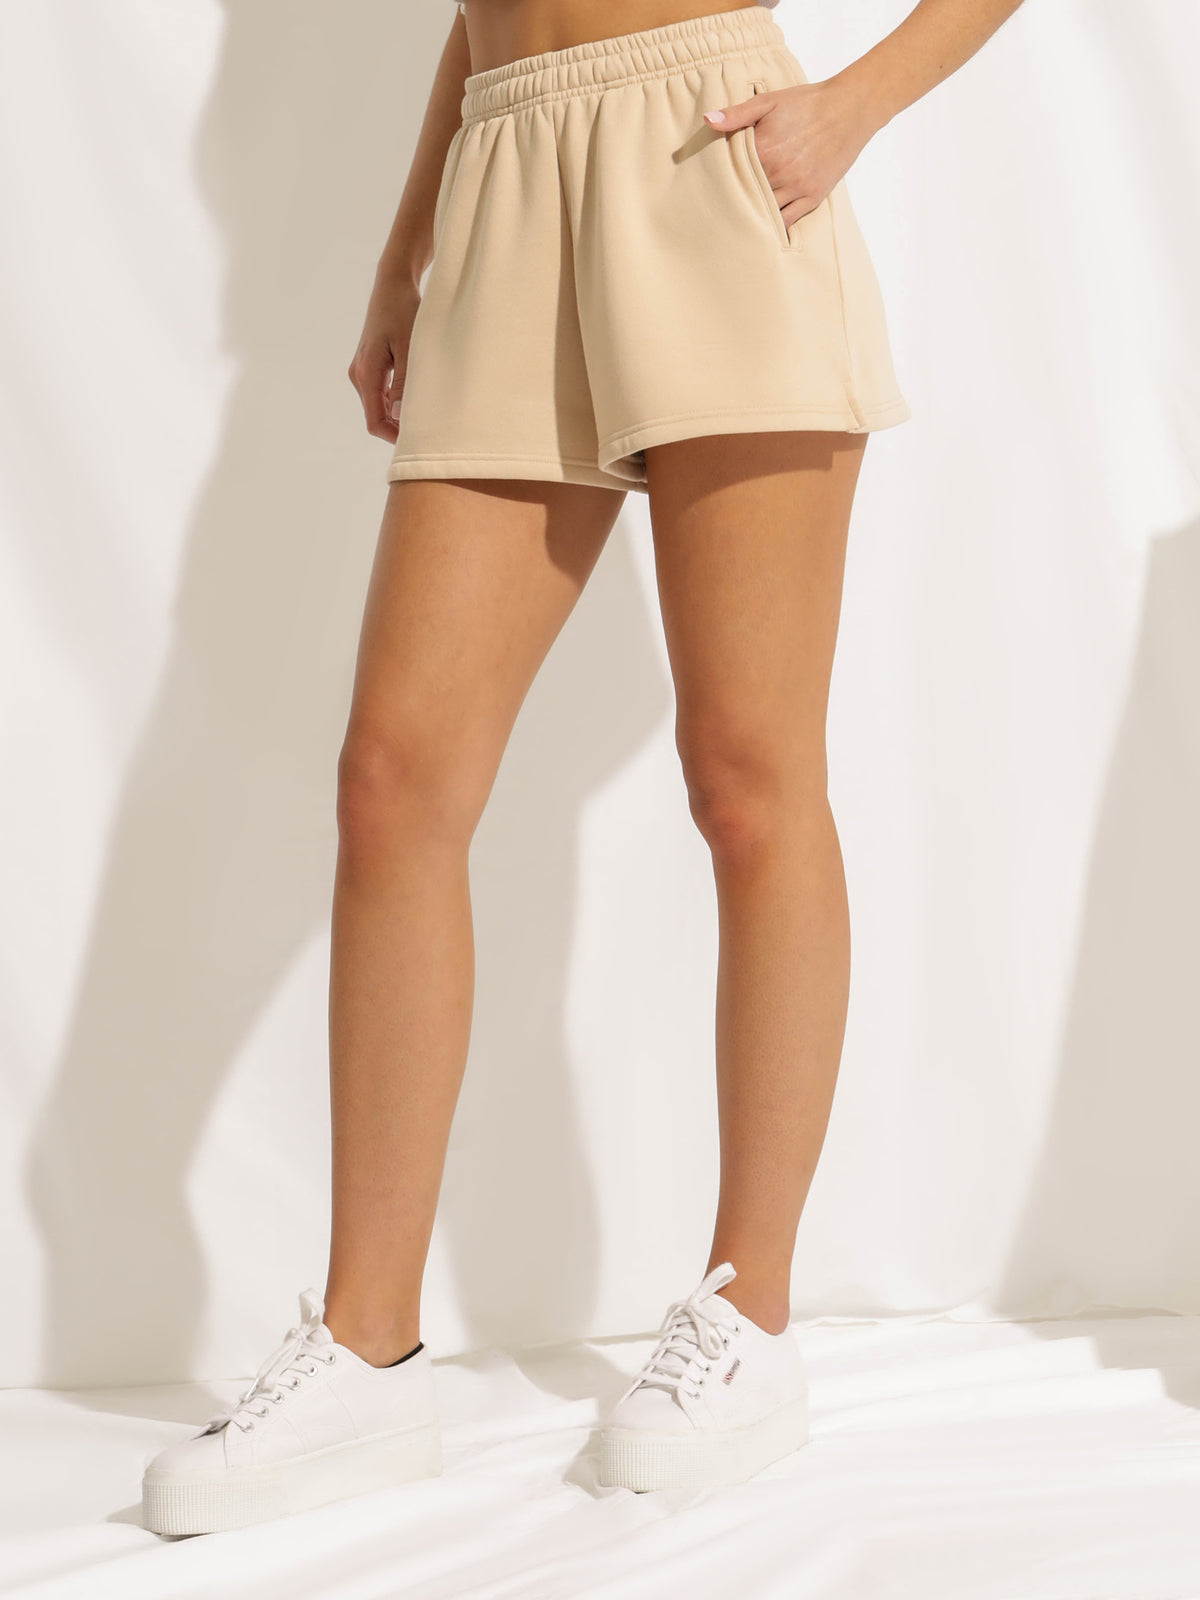 Carter Classic Shorts in Sand